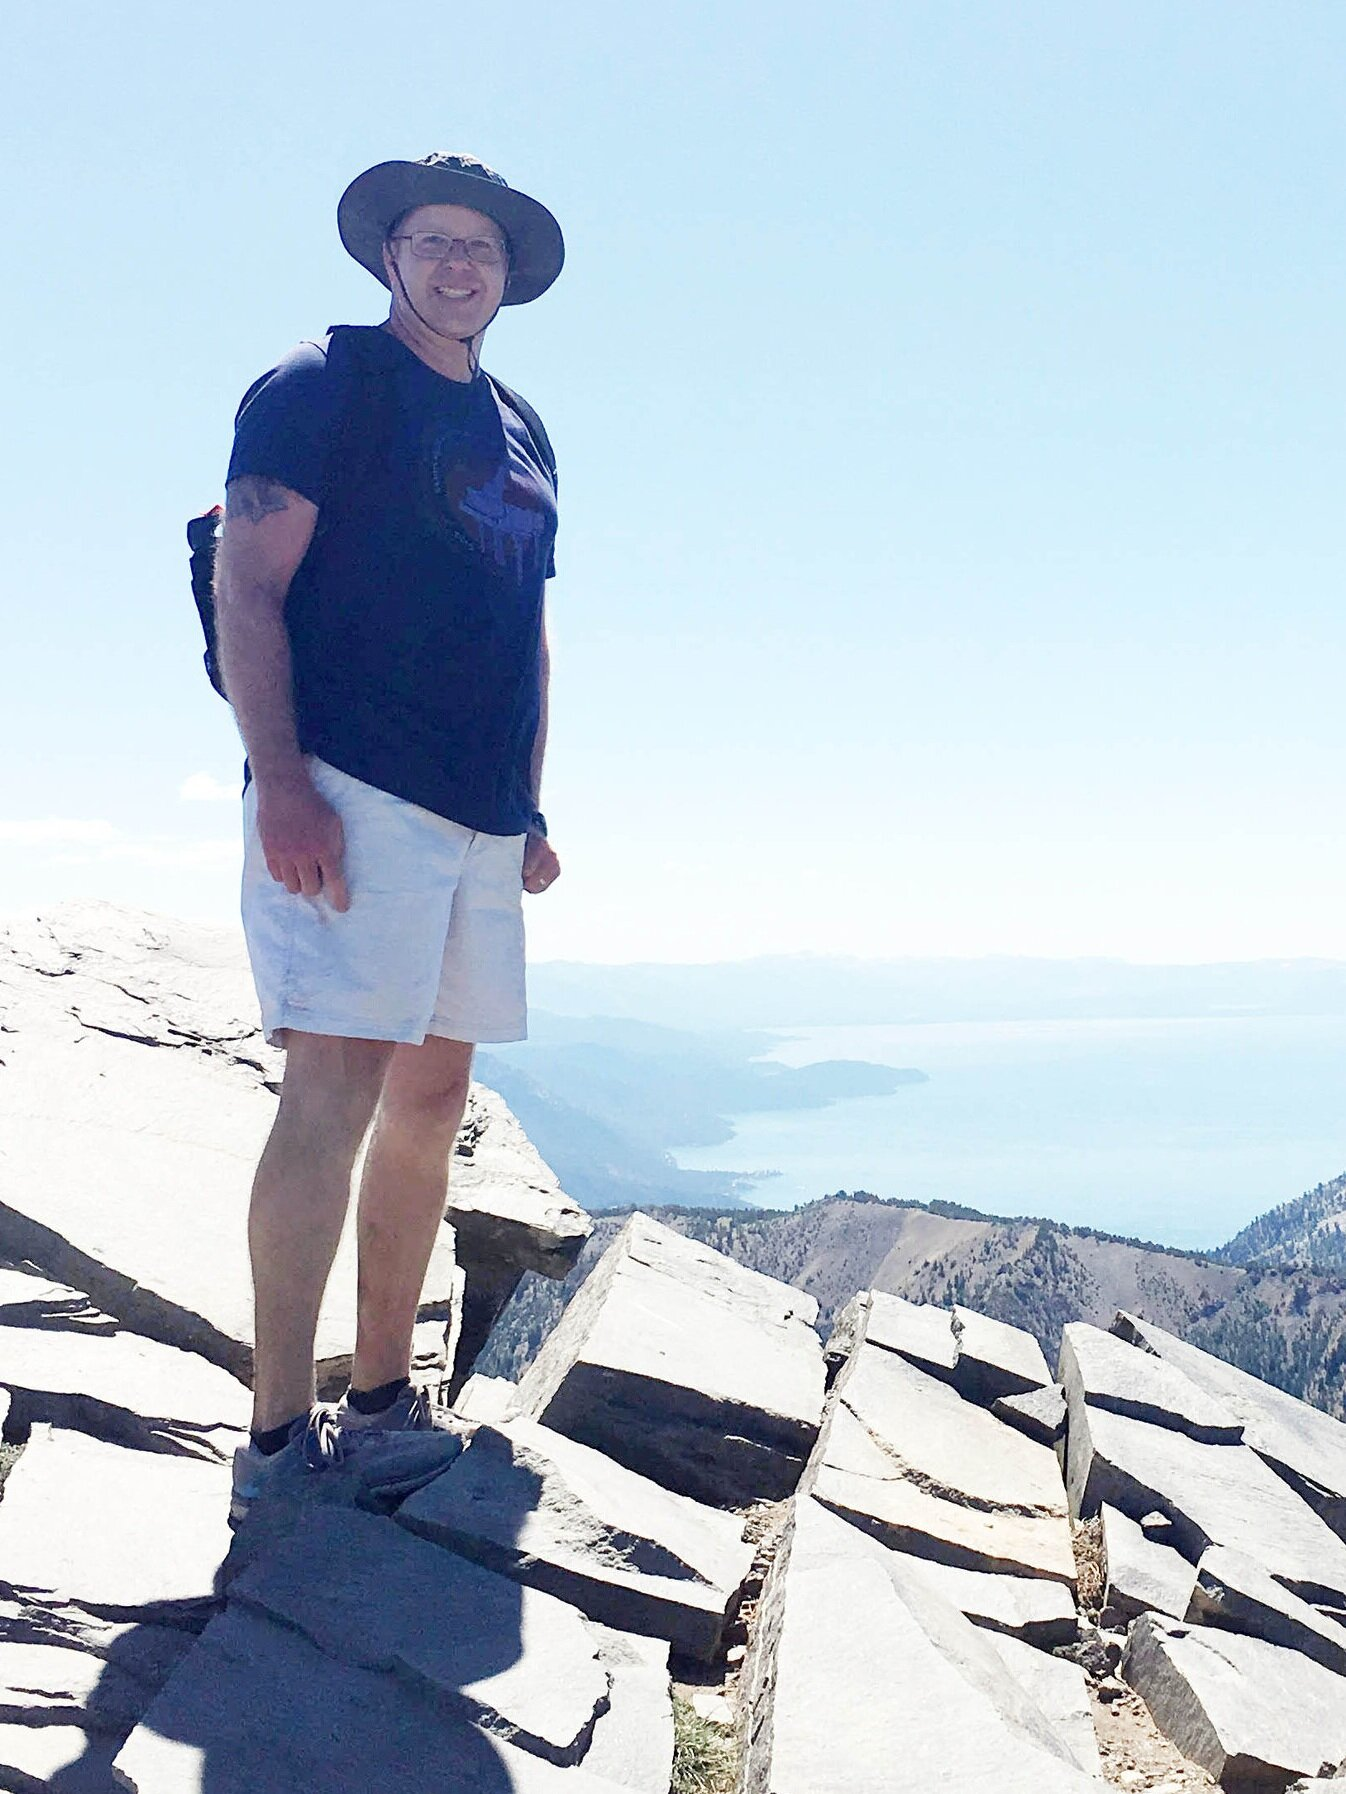 An adventure-seeker, Kevin stands at the Mt. Rose summit overlooking Lake Tahoe from 10,775 feet.